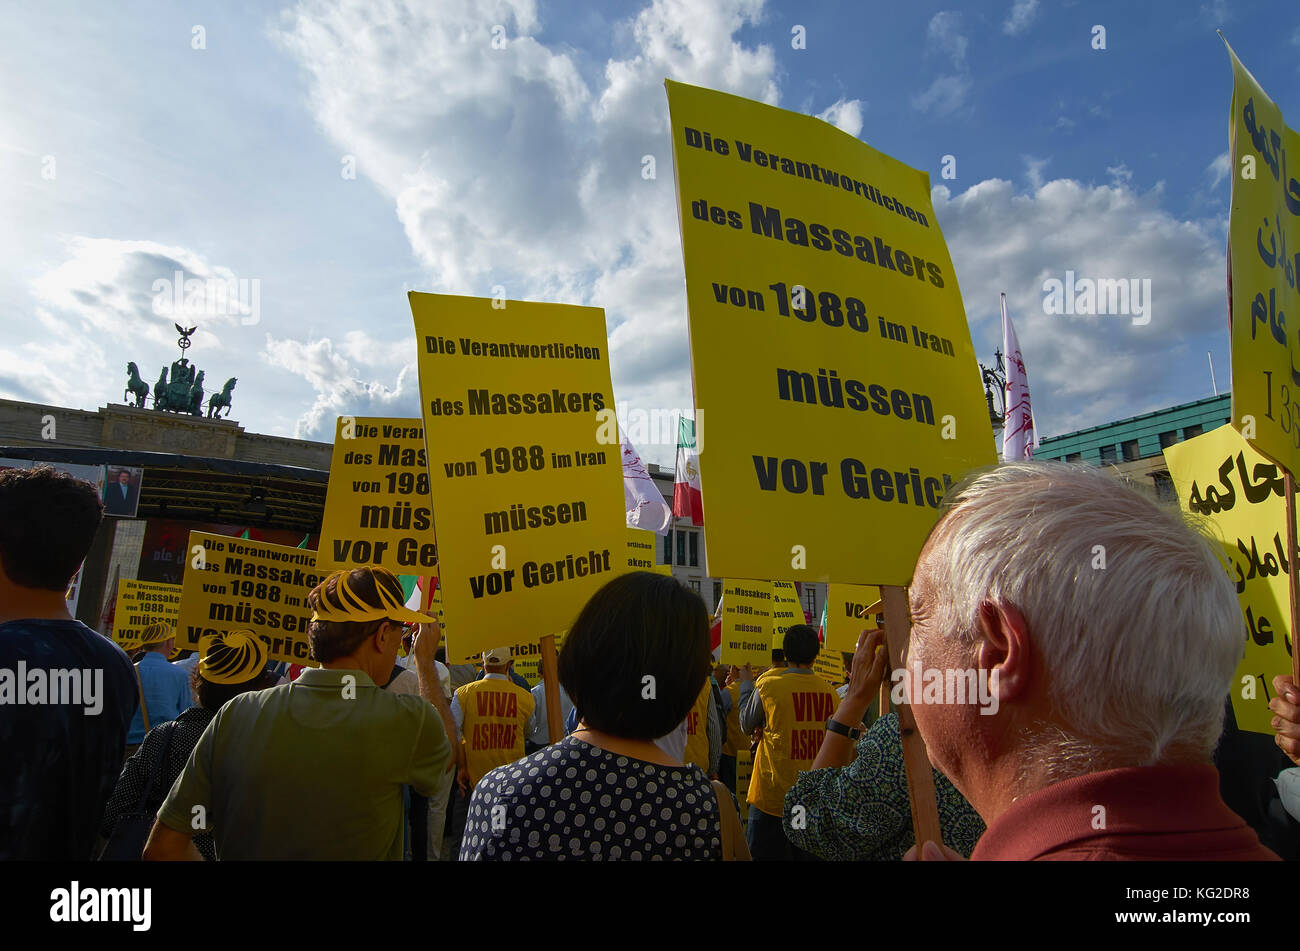 People protesting tp remember The 1988 Massacre of political prisoners in Iran, Berlin, Germany - Stock Image